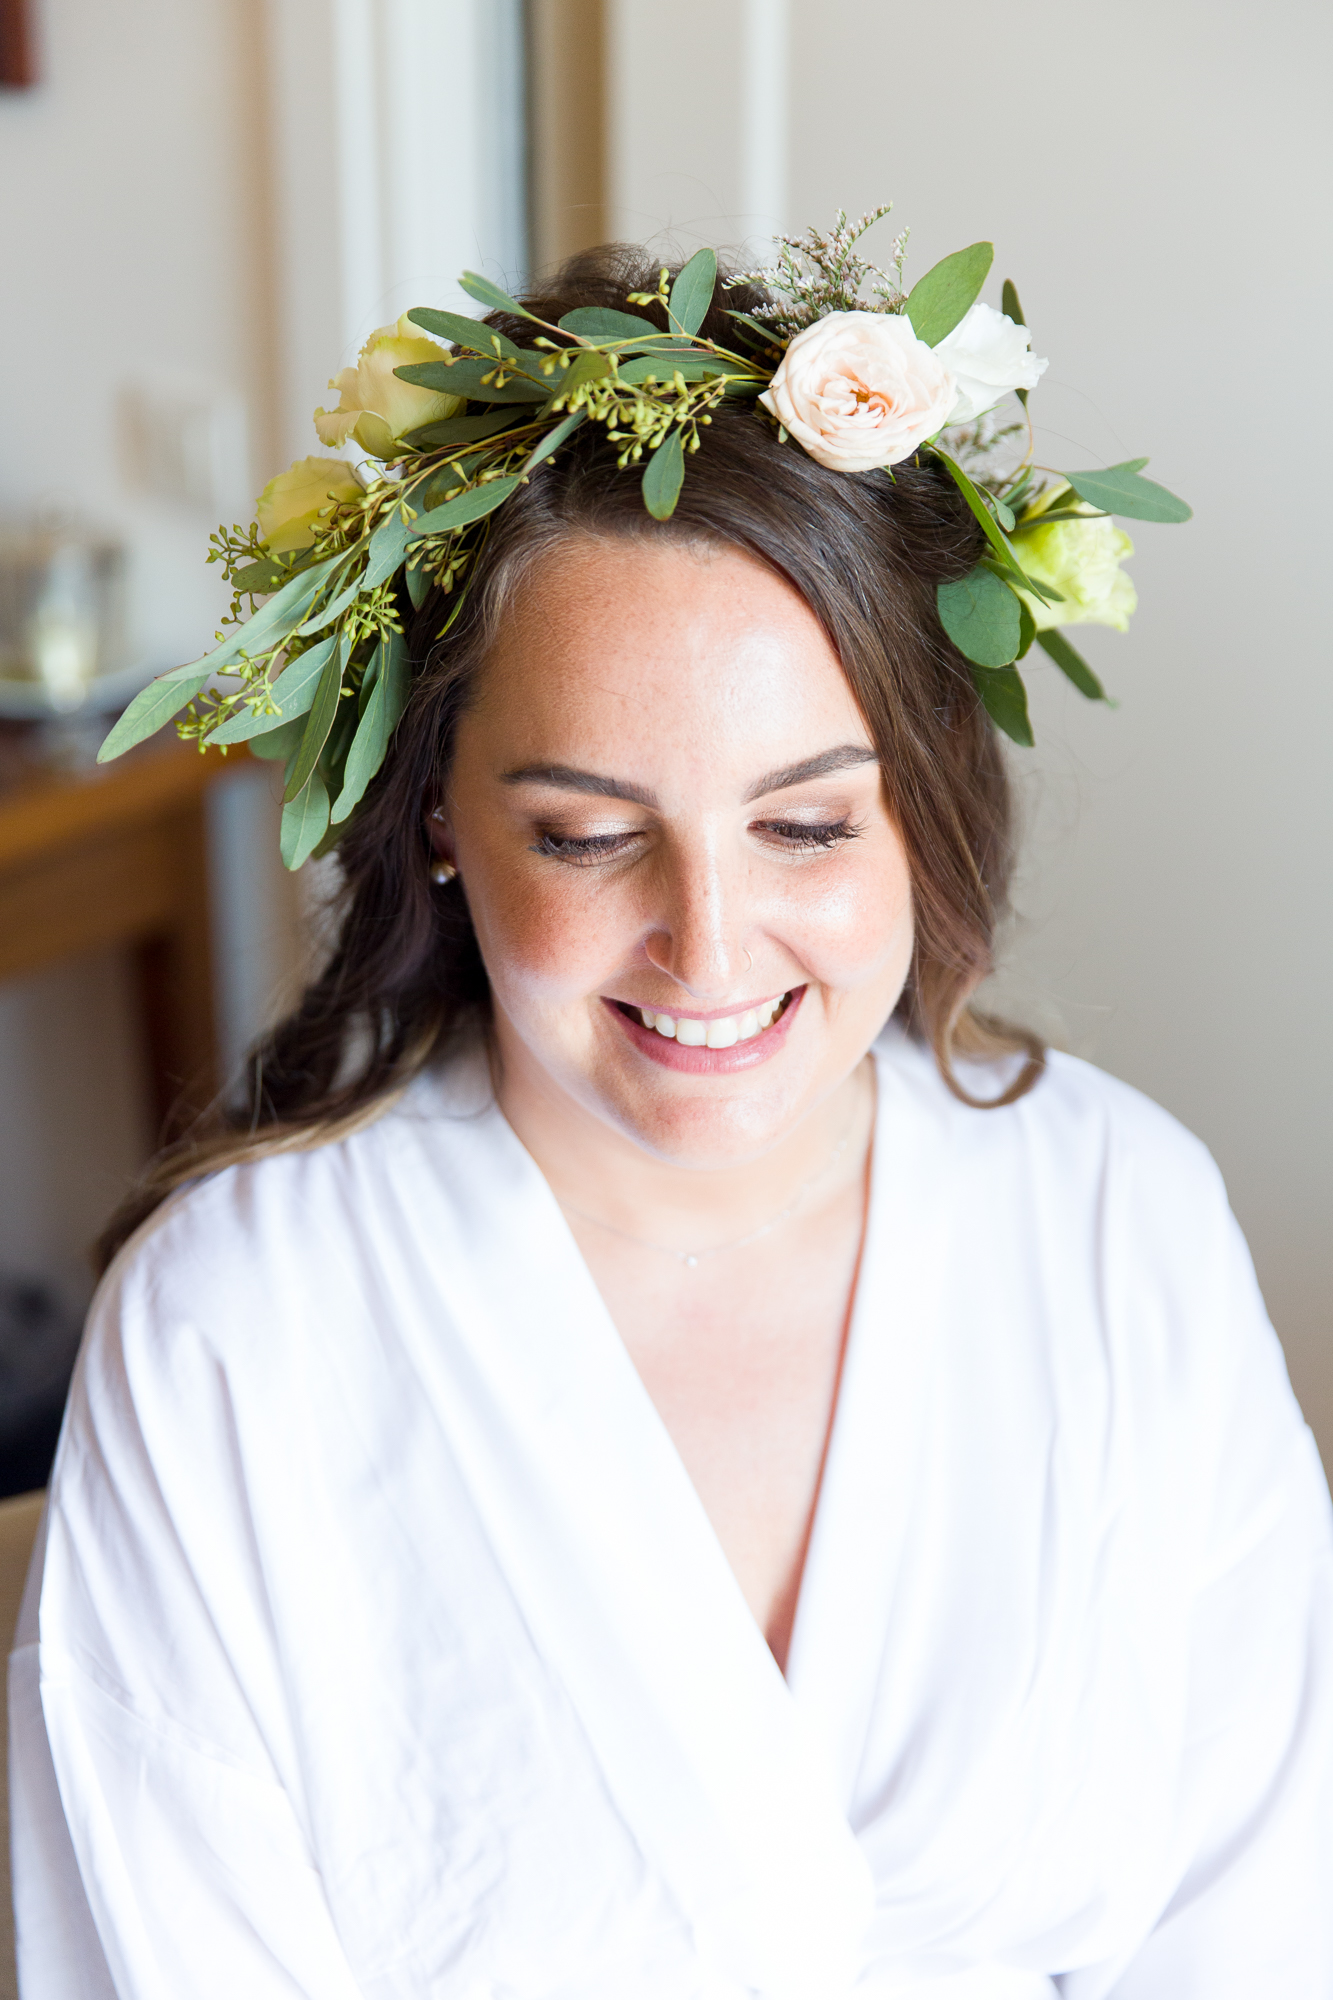 Bride smiles wearing floral crown at Hotel Les Rotes in Denia wedding